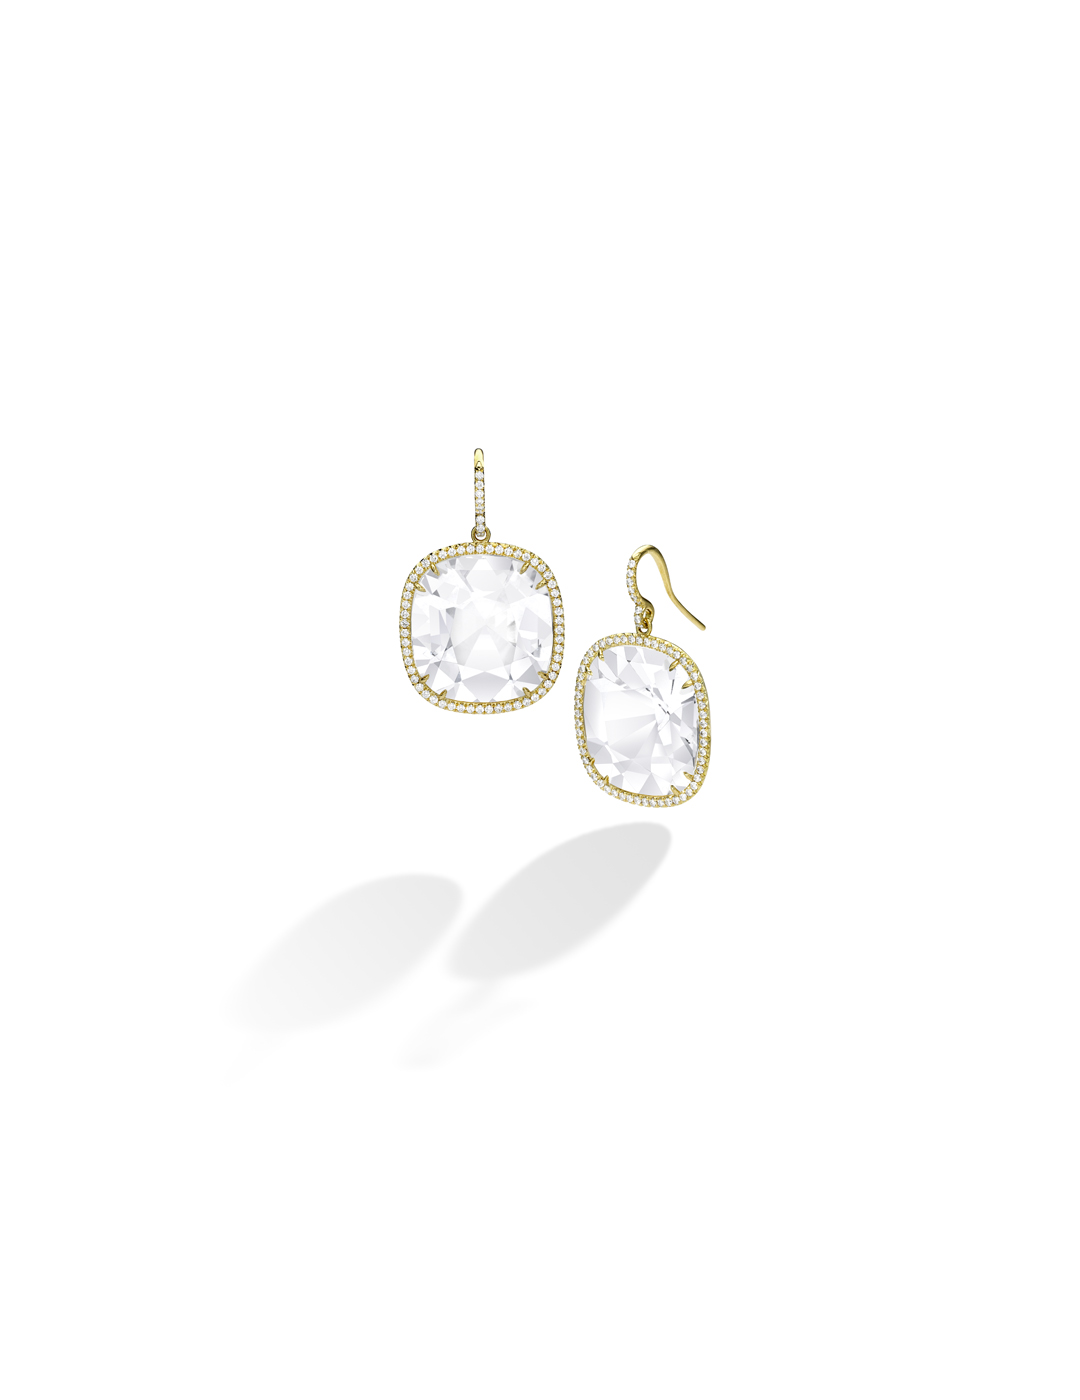 mish_products_earrings_Ice Cube-RckCrystal-YG-ER-1